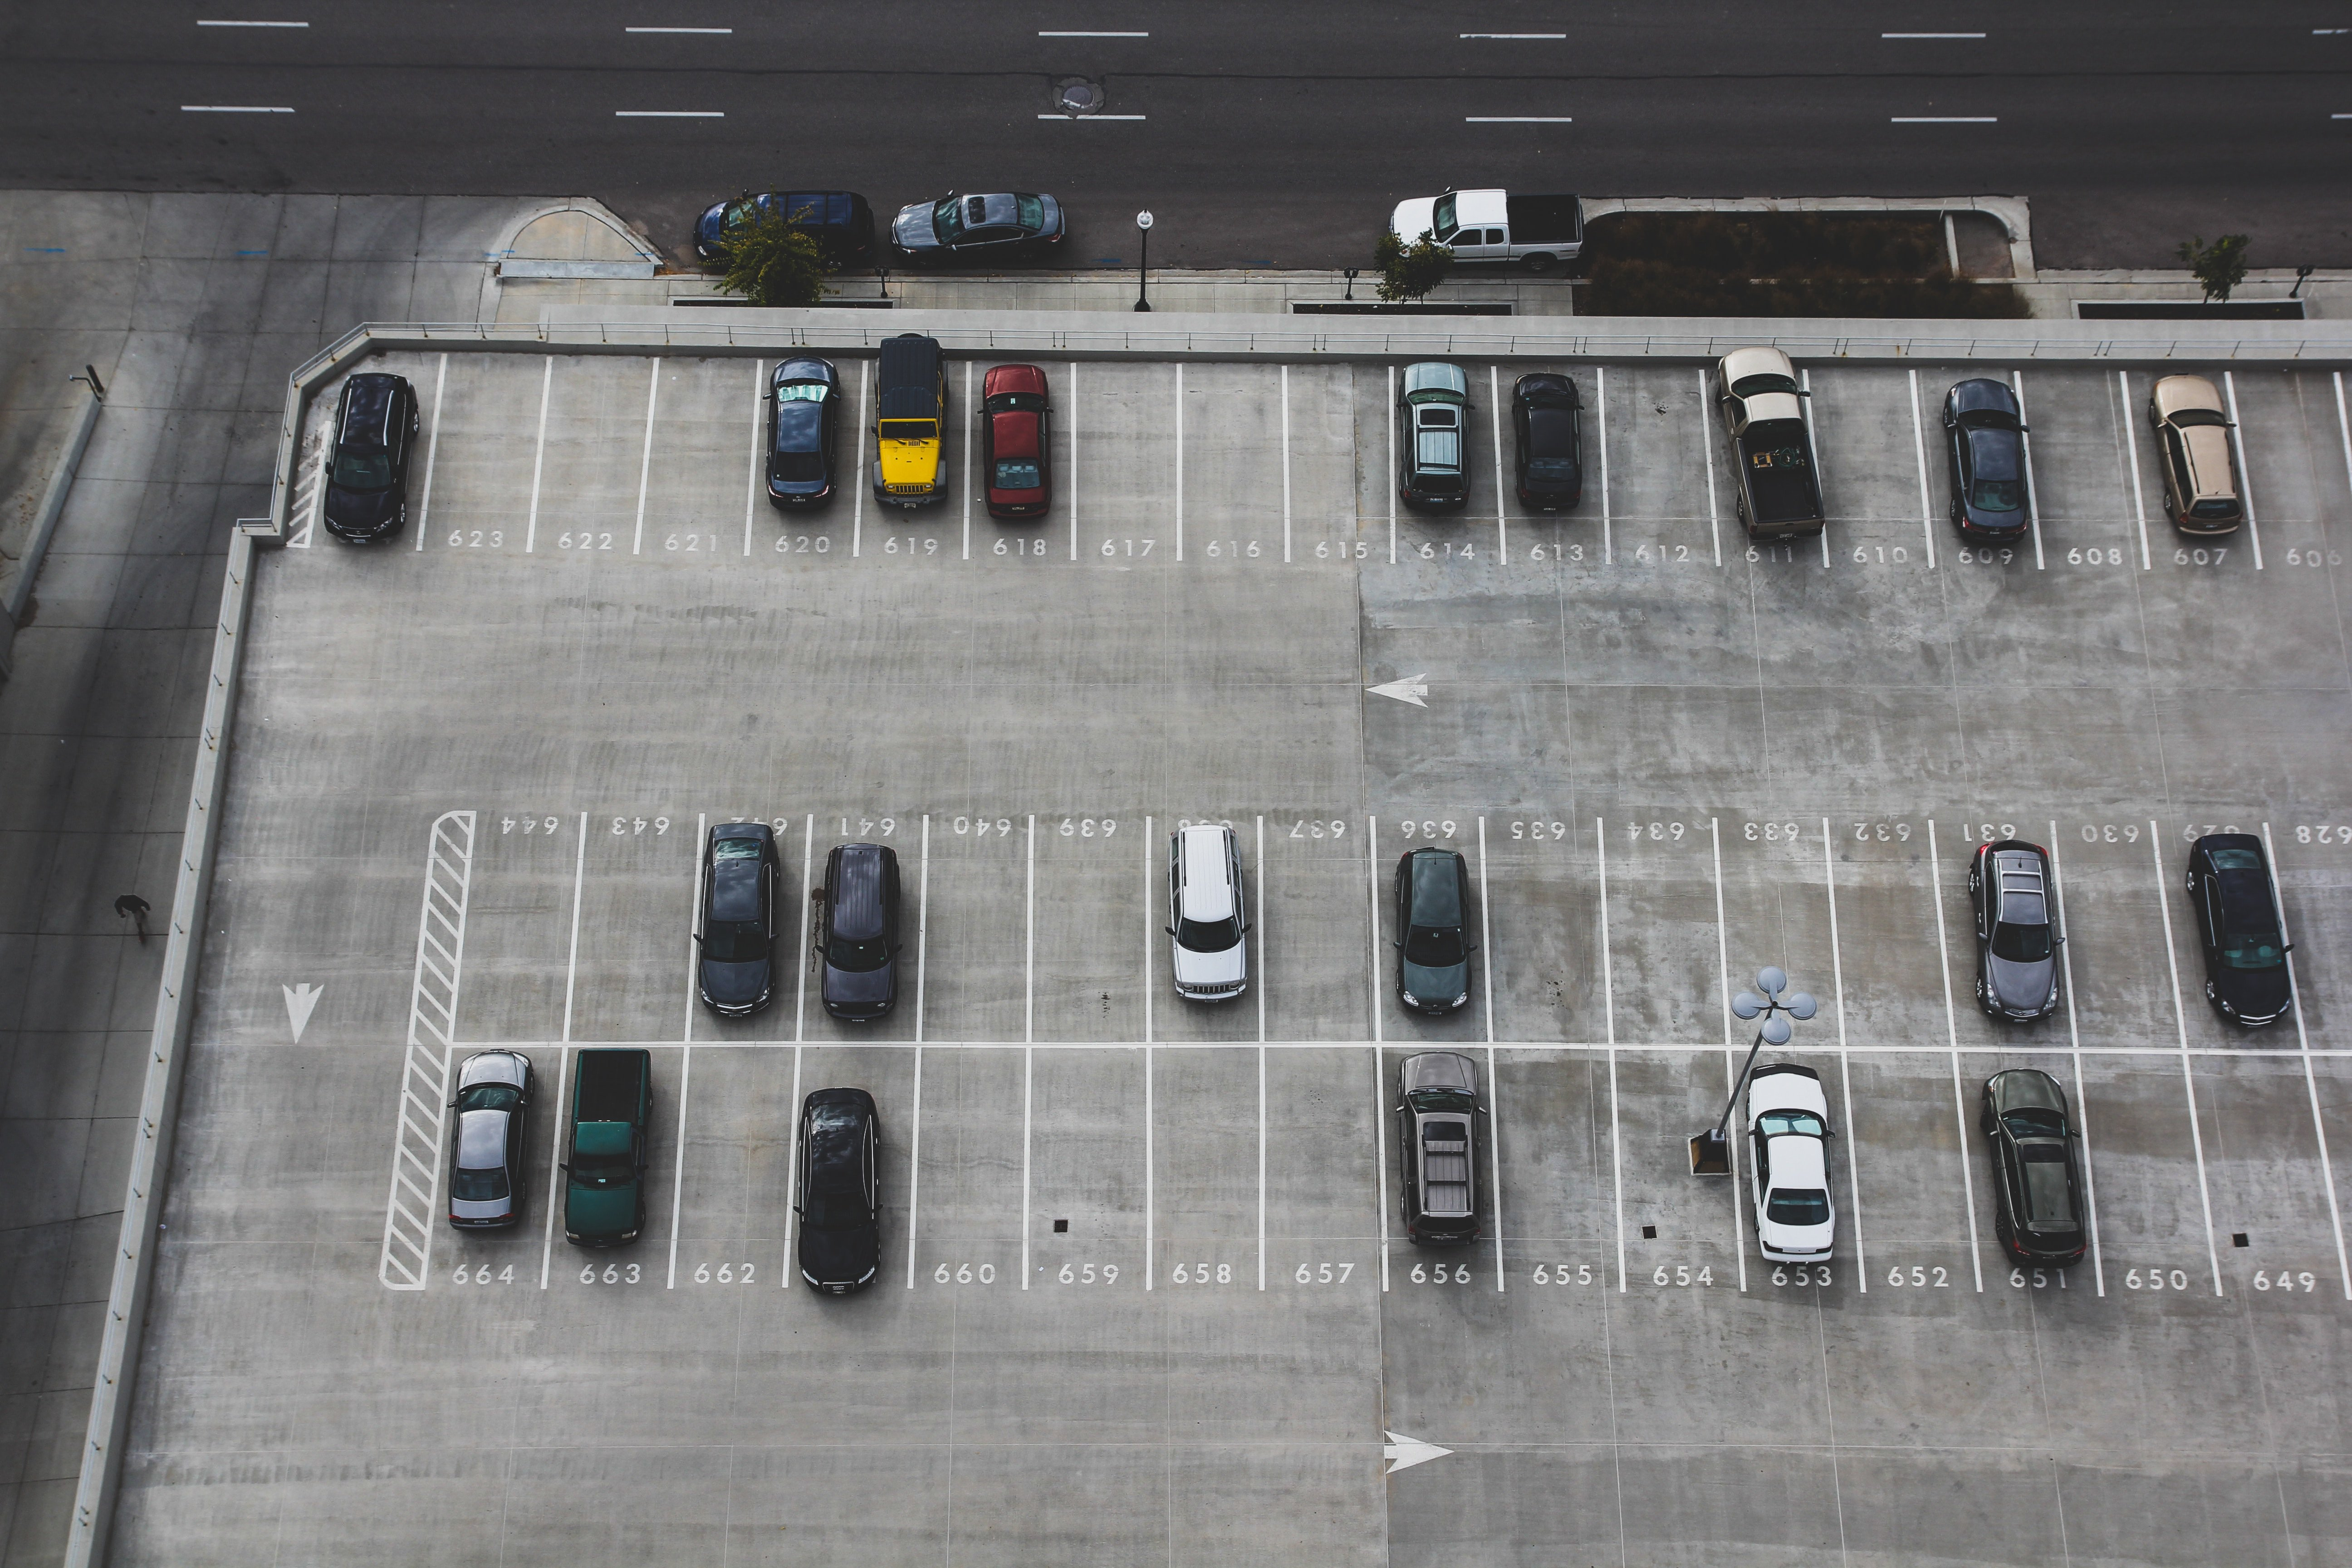 An aerial view of a parking lot | Source: Unsplash.com